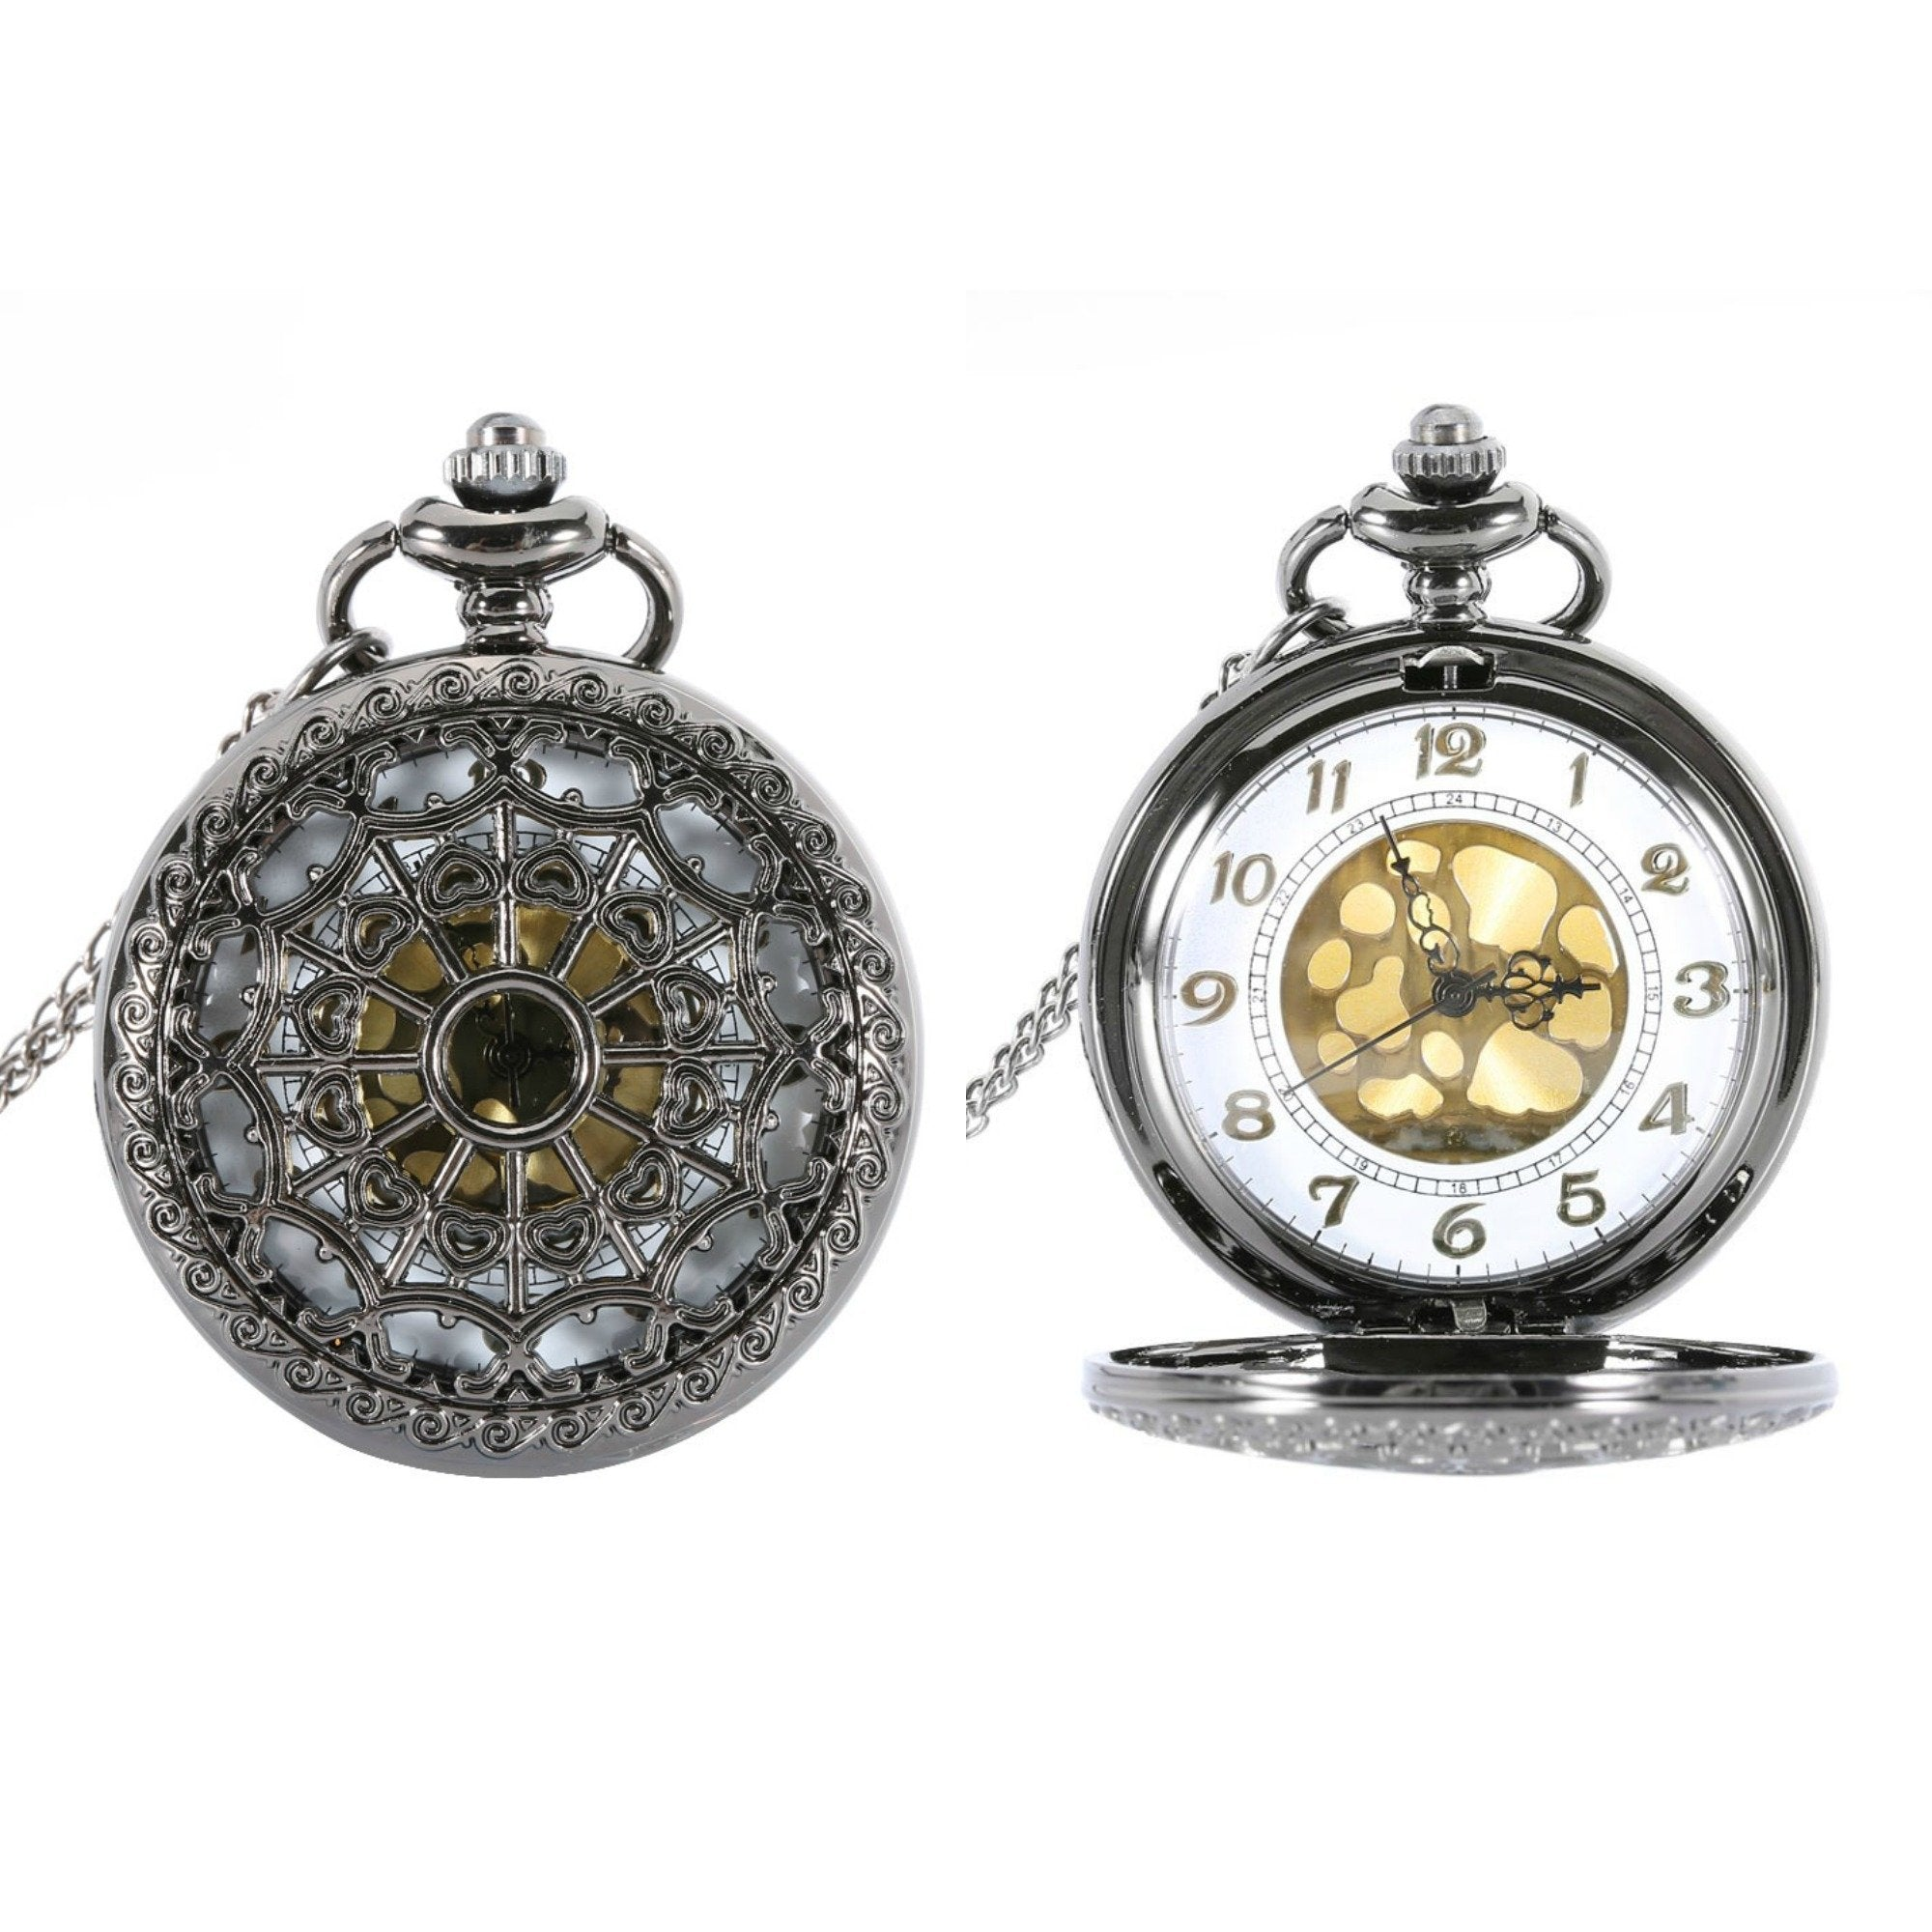 Black Spiderweb Quartz Pocket Watch - Minimum Mouse